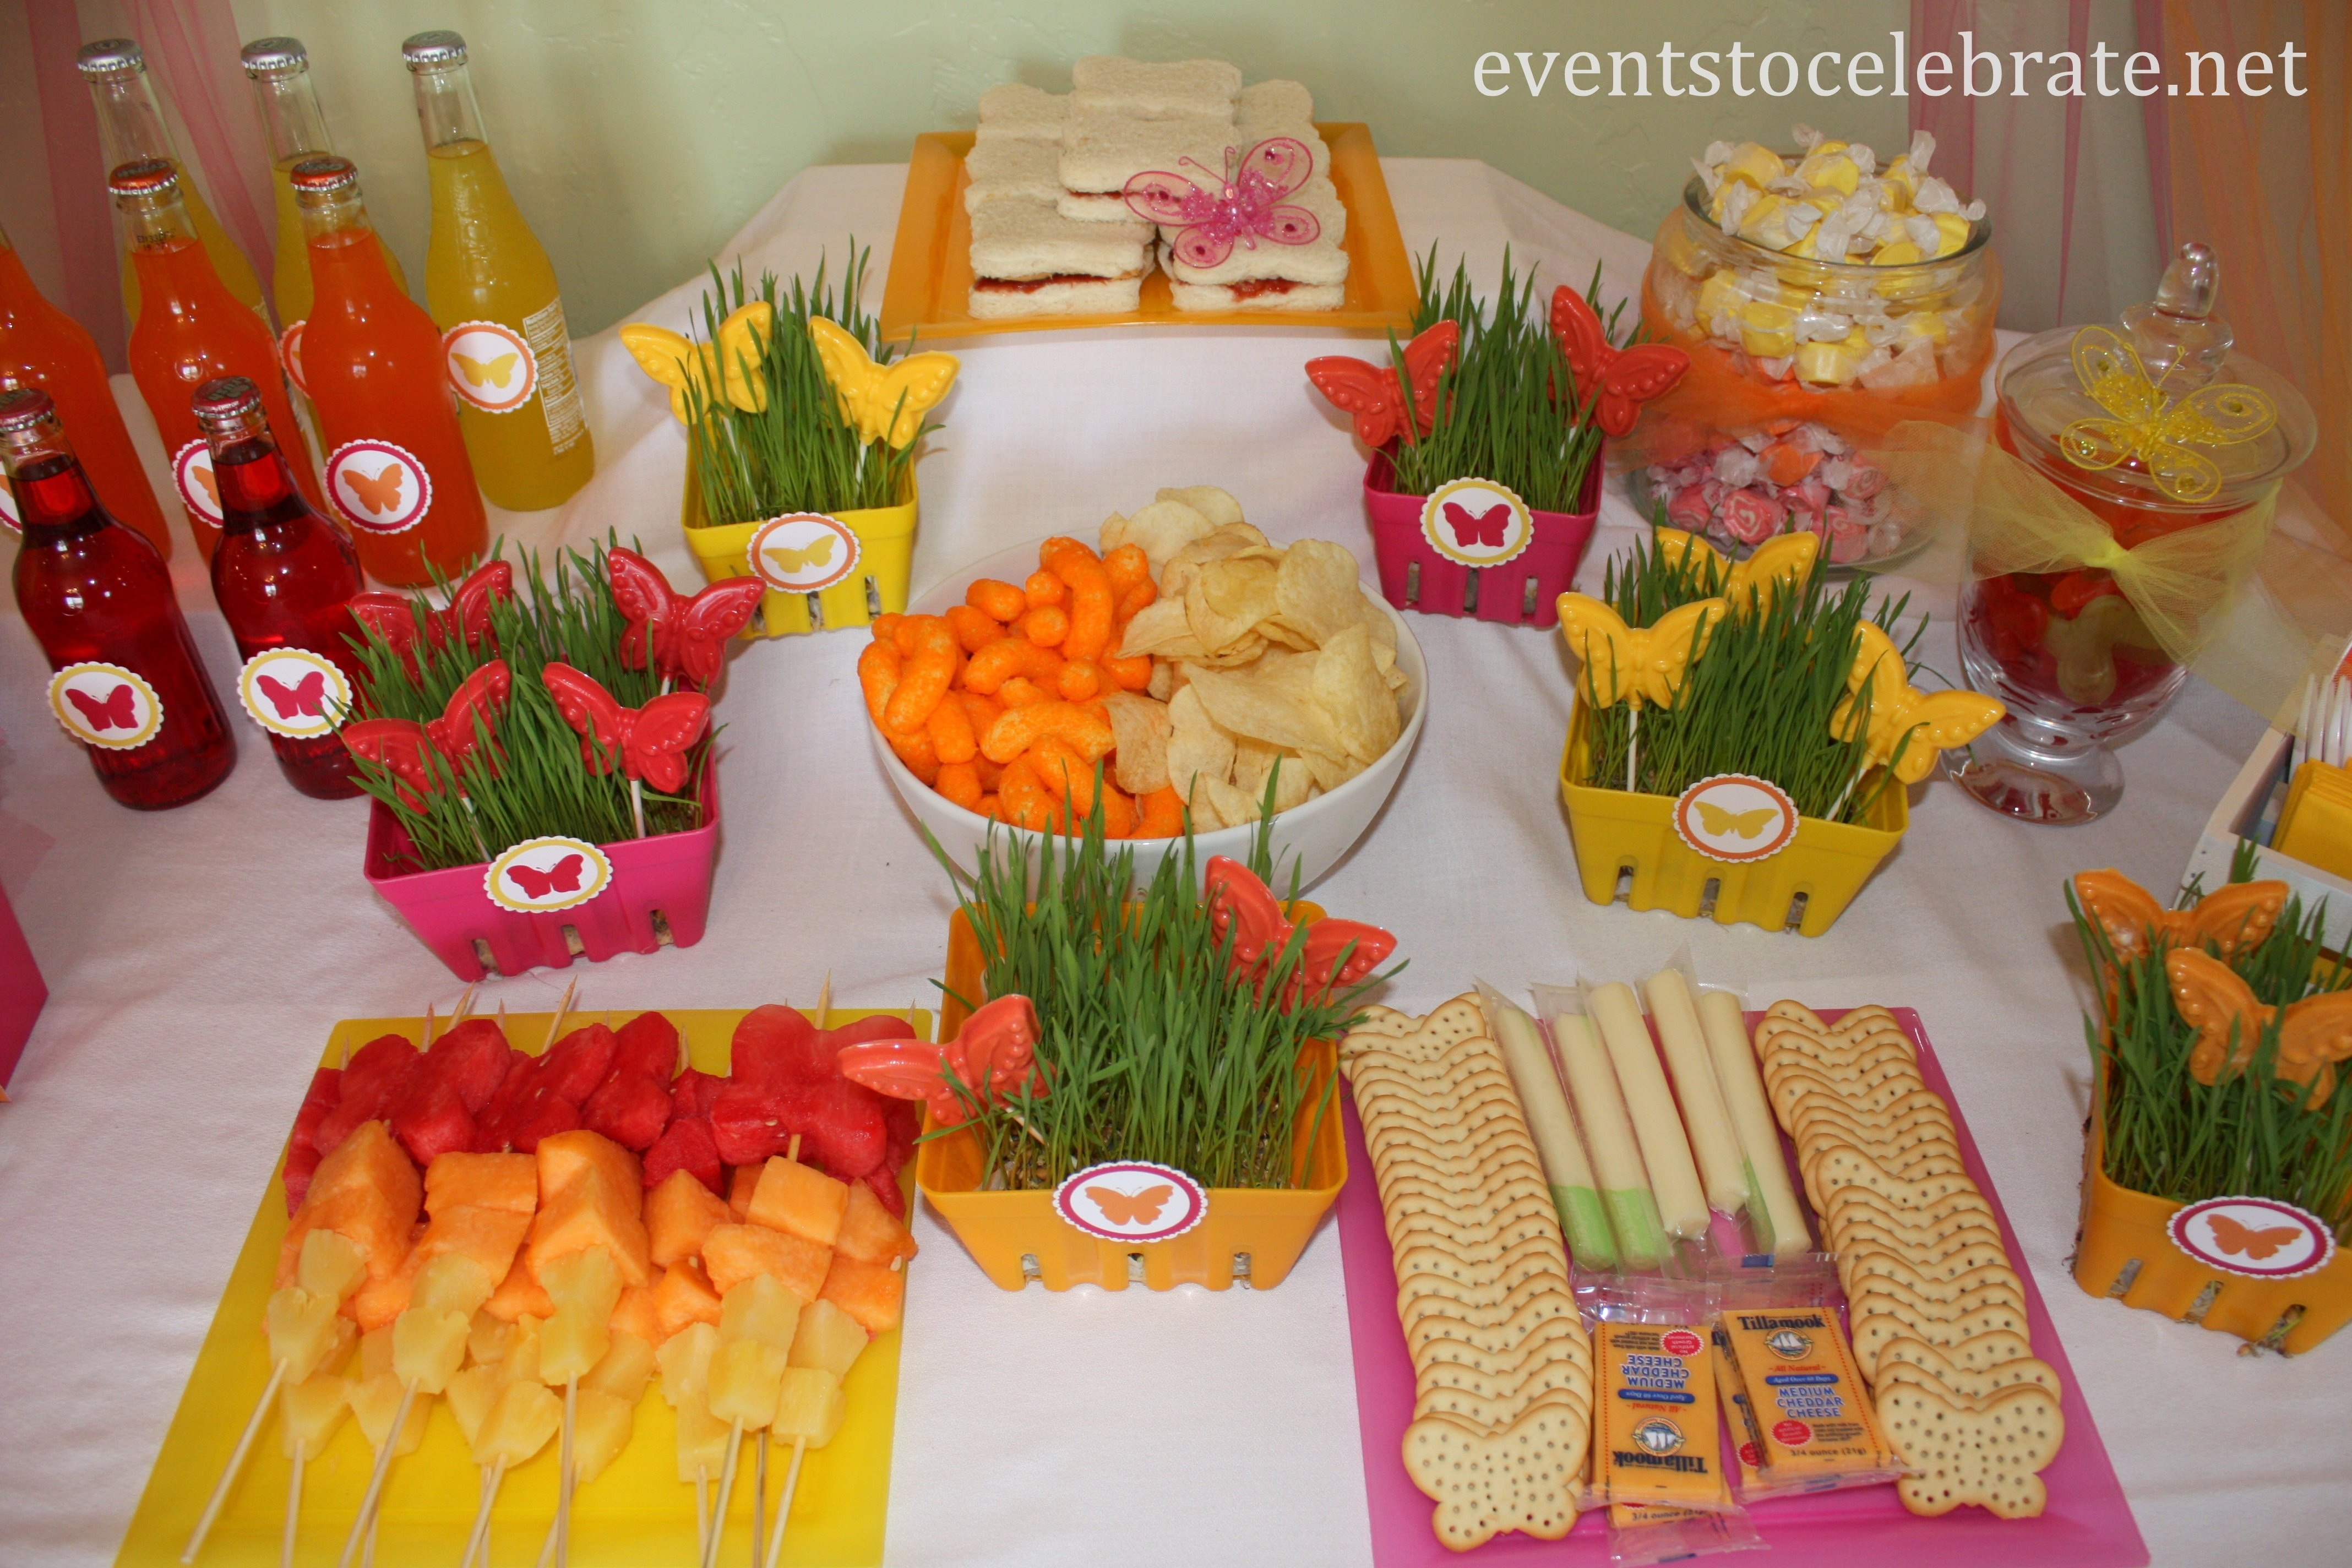 10 Beautiful Kid Birthday Party Food Ideas butterfly themed birthday party food desserts events to celebrate 2020